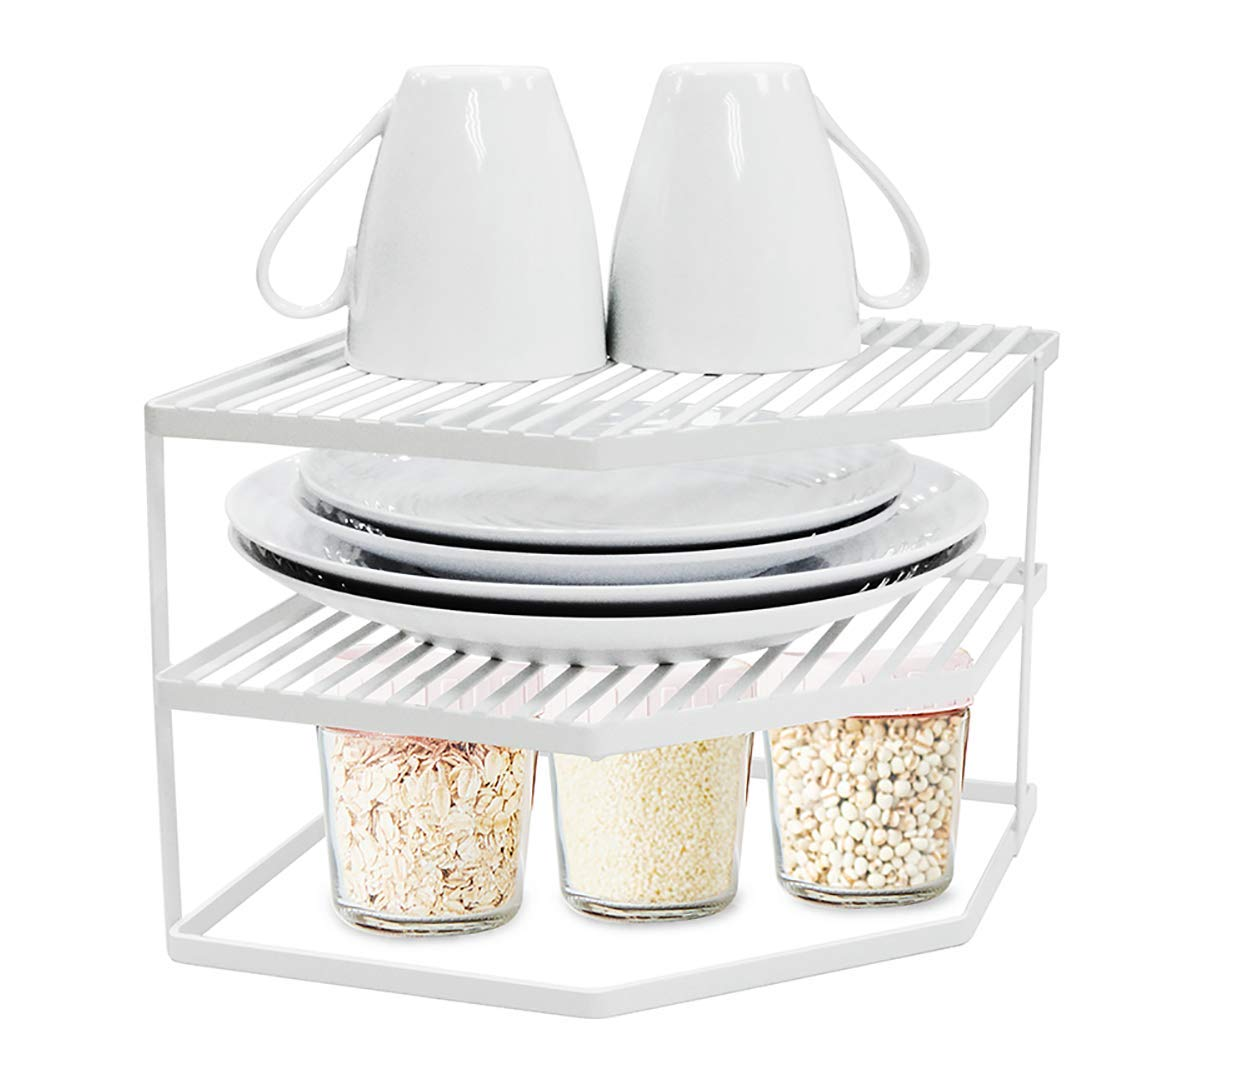 TIDY WISE SIMPLE ORGANIZING SOLUTIONS 3-Tier Corner Shelf Counter and Cabinet Organizer, White